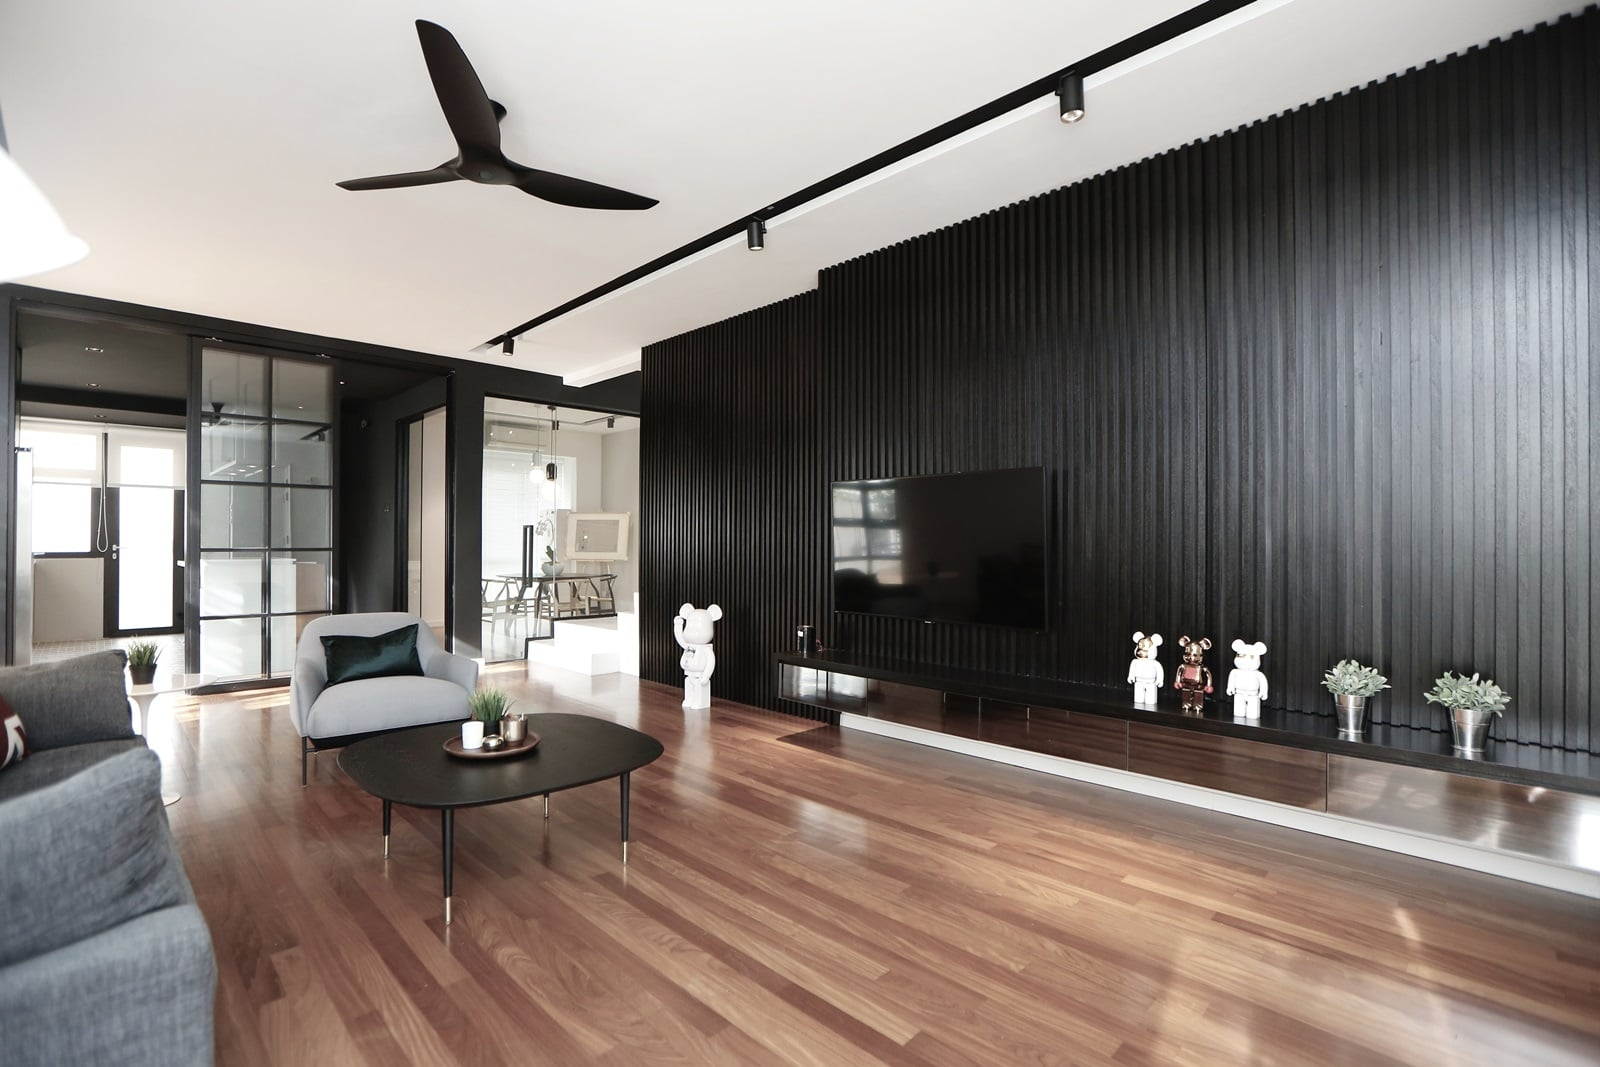 Contrasting elements of dark and light look stunning in the living area complemented beautifully by the timber flooring.